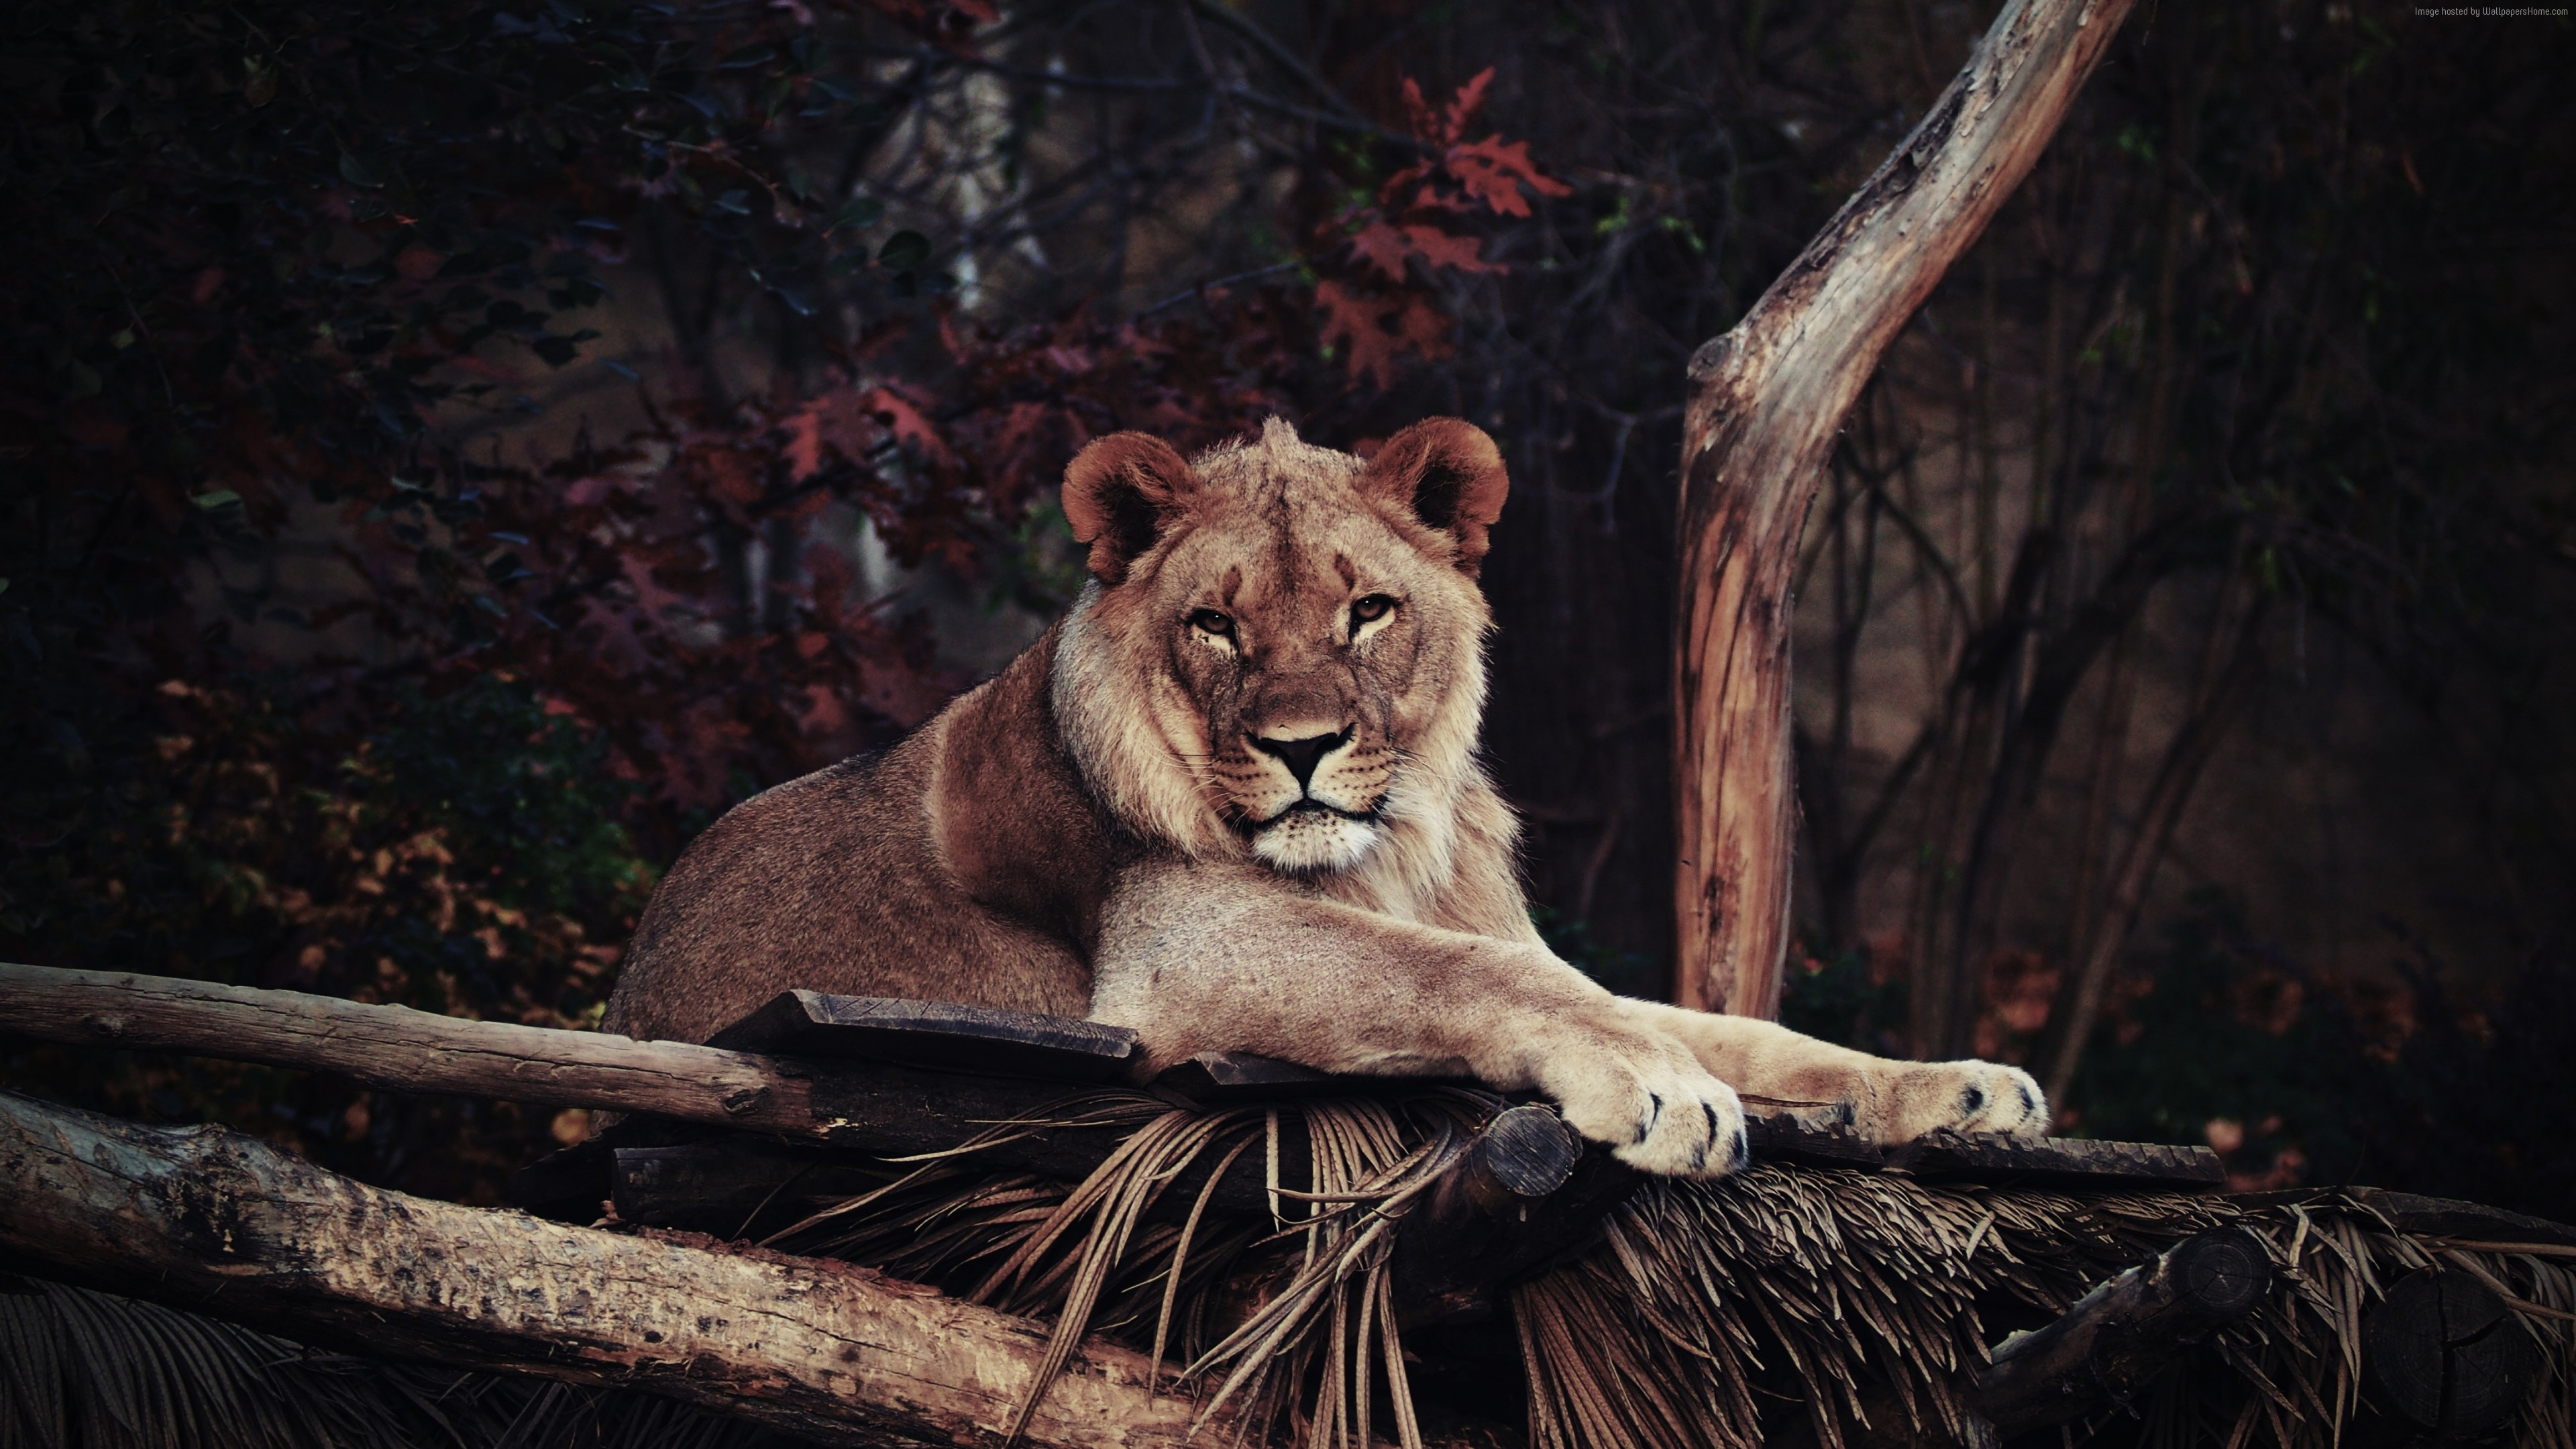 Wallpaper lion, savanna, 5k, Animals